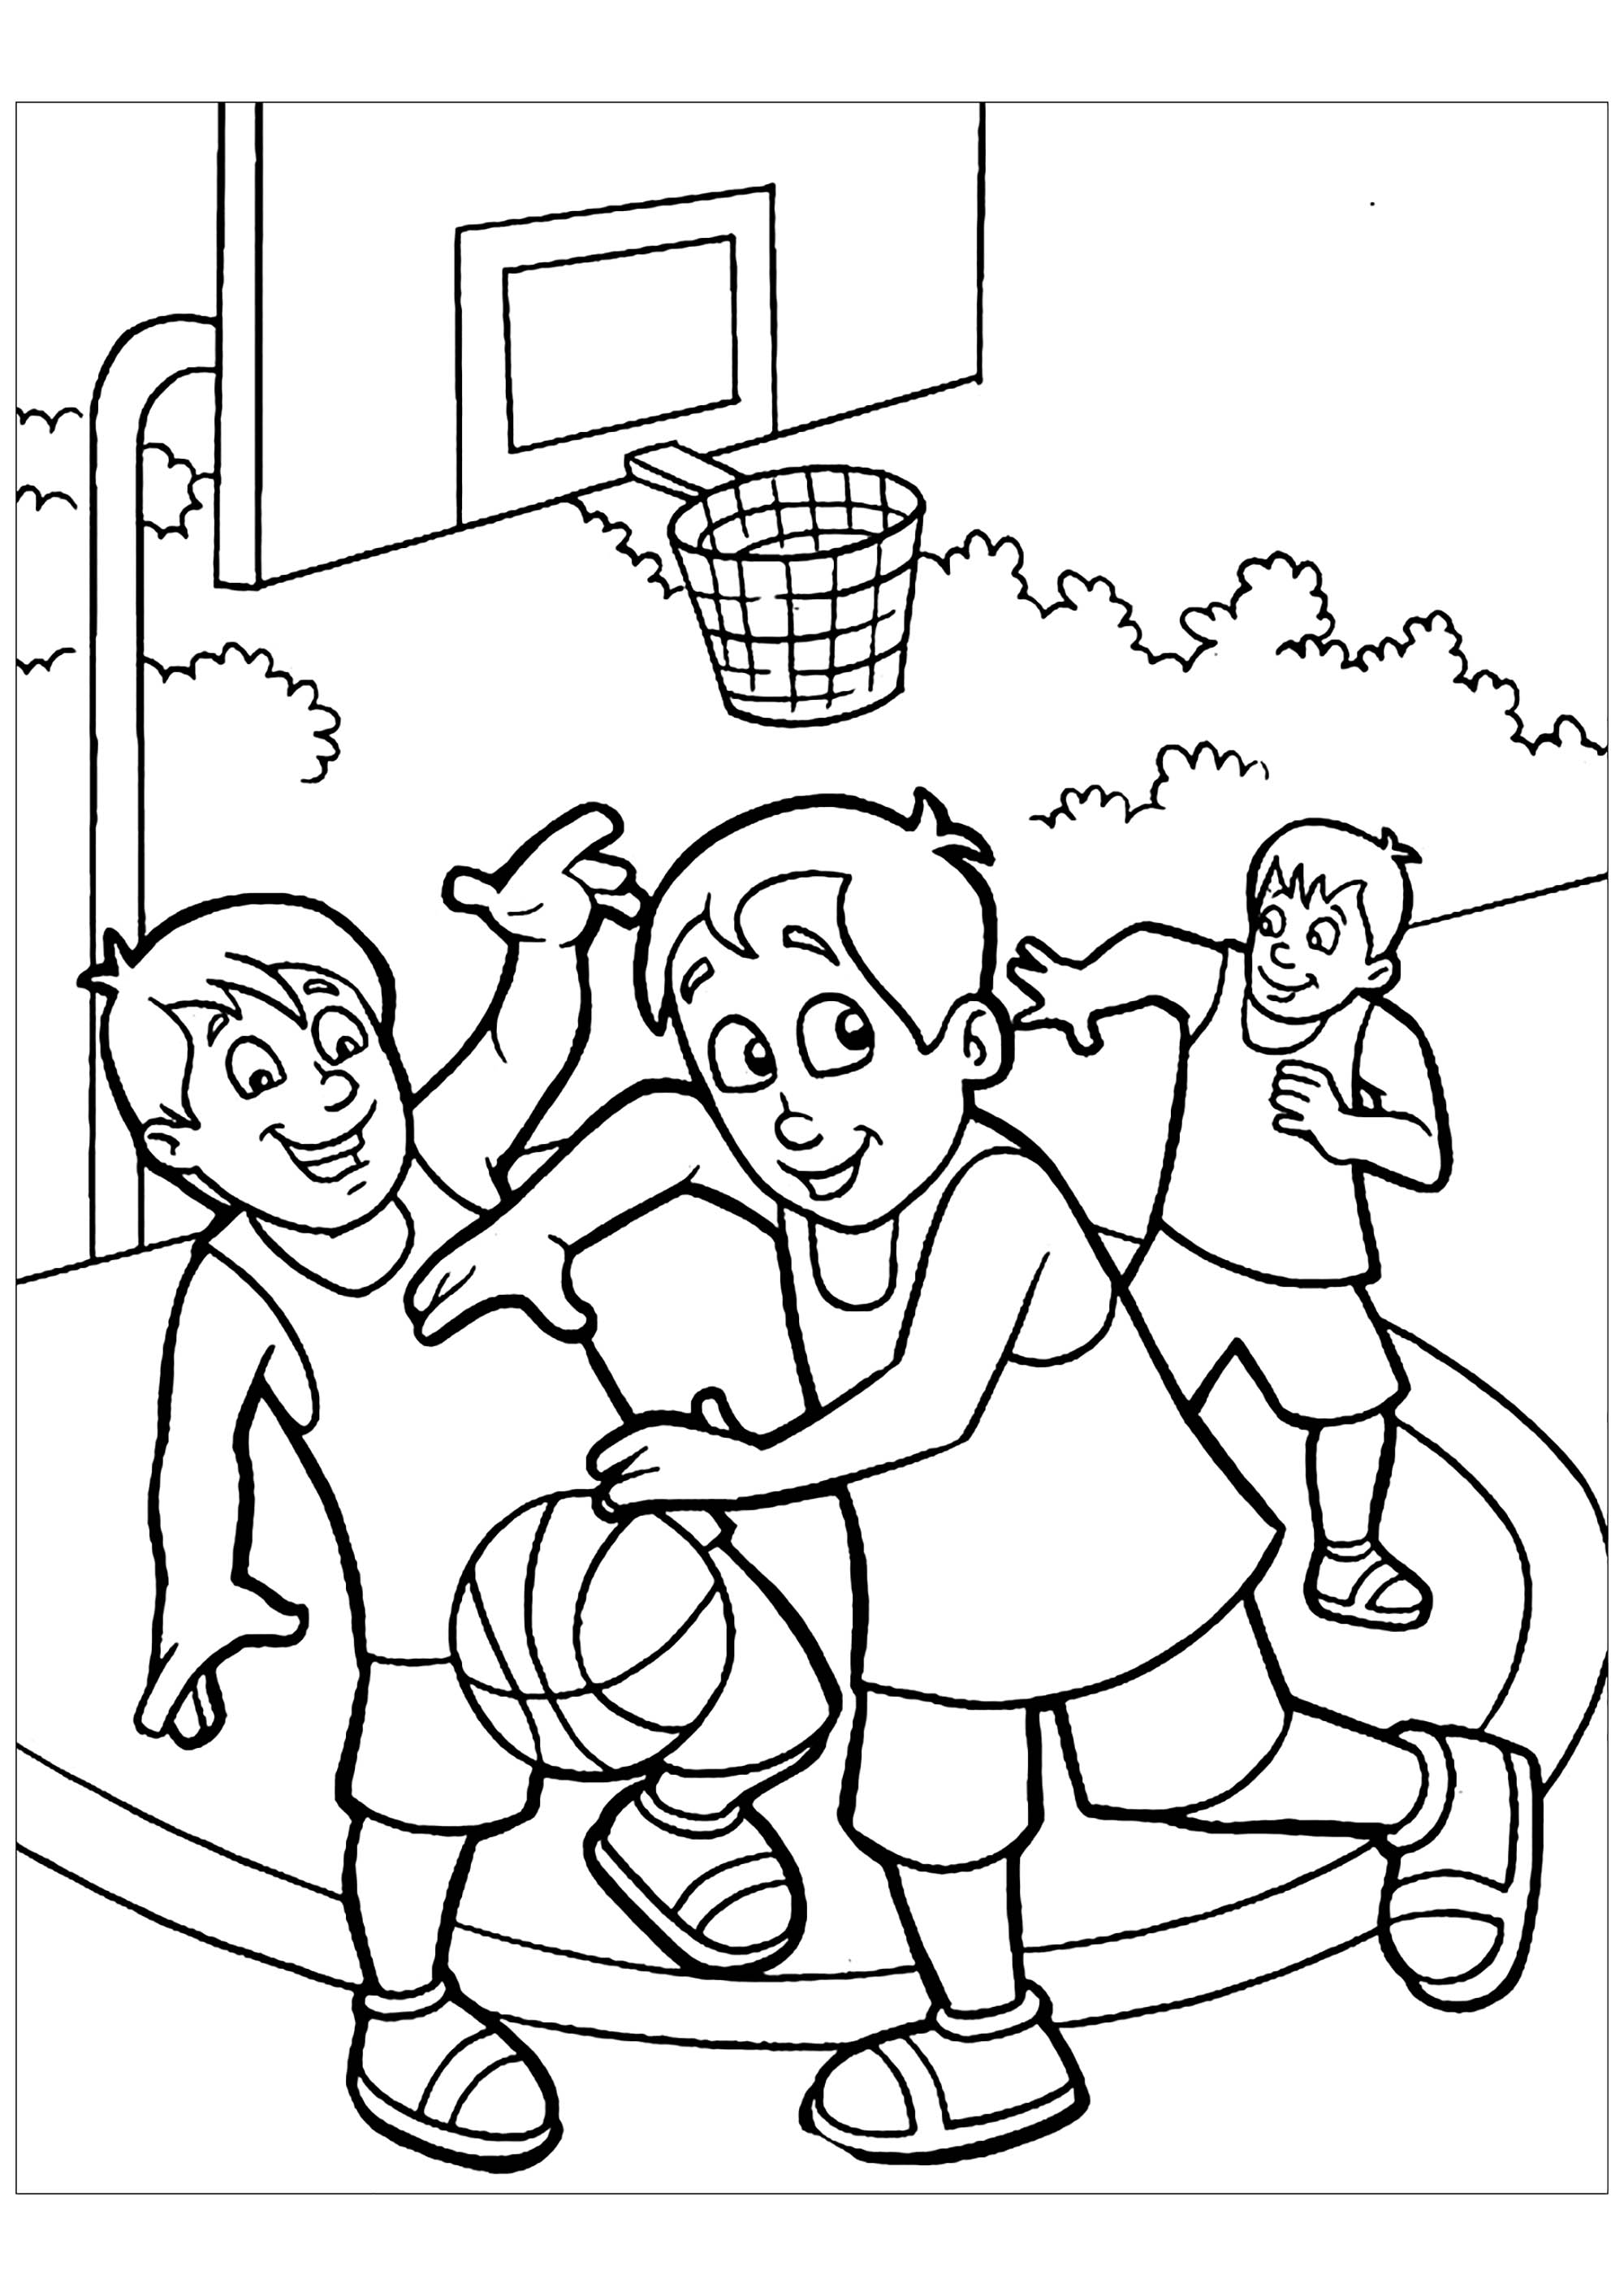 Basketball Free To Color For Kids